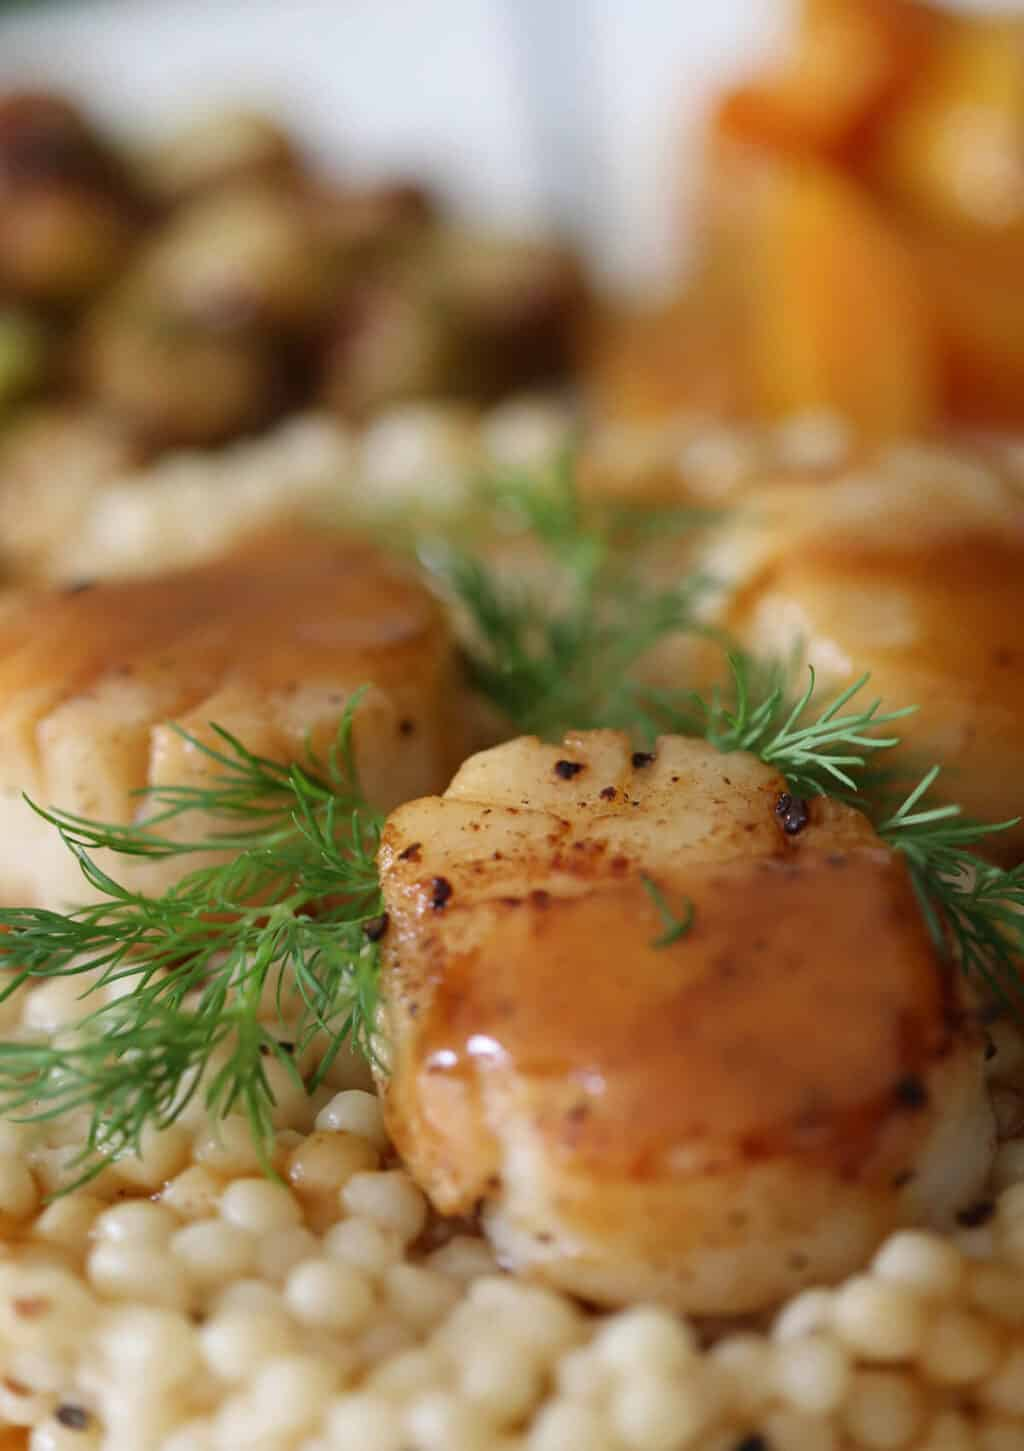 A photo of a scallop on a plate with cous cous and dill.